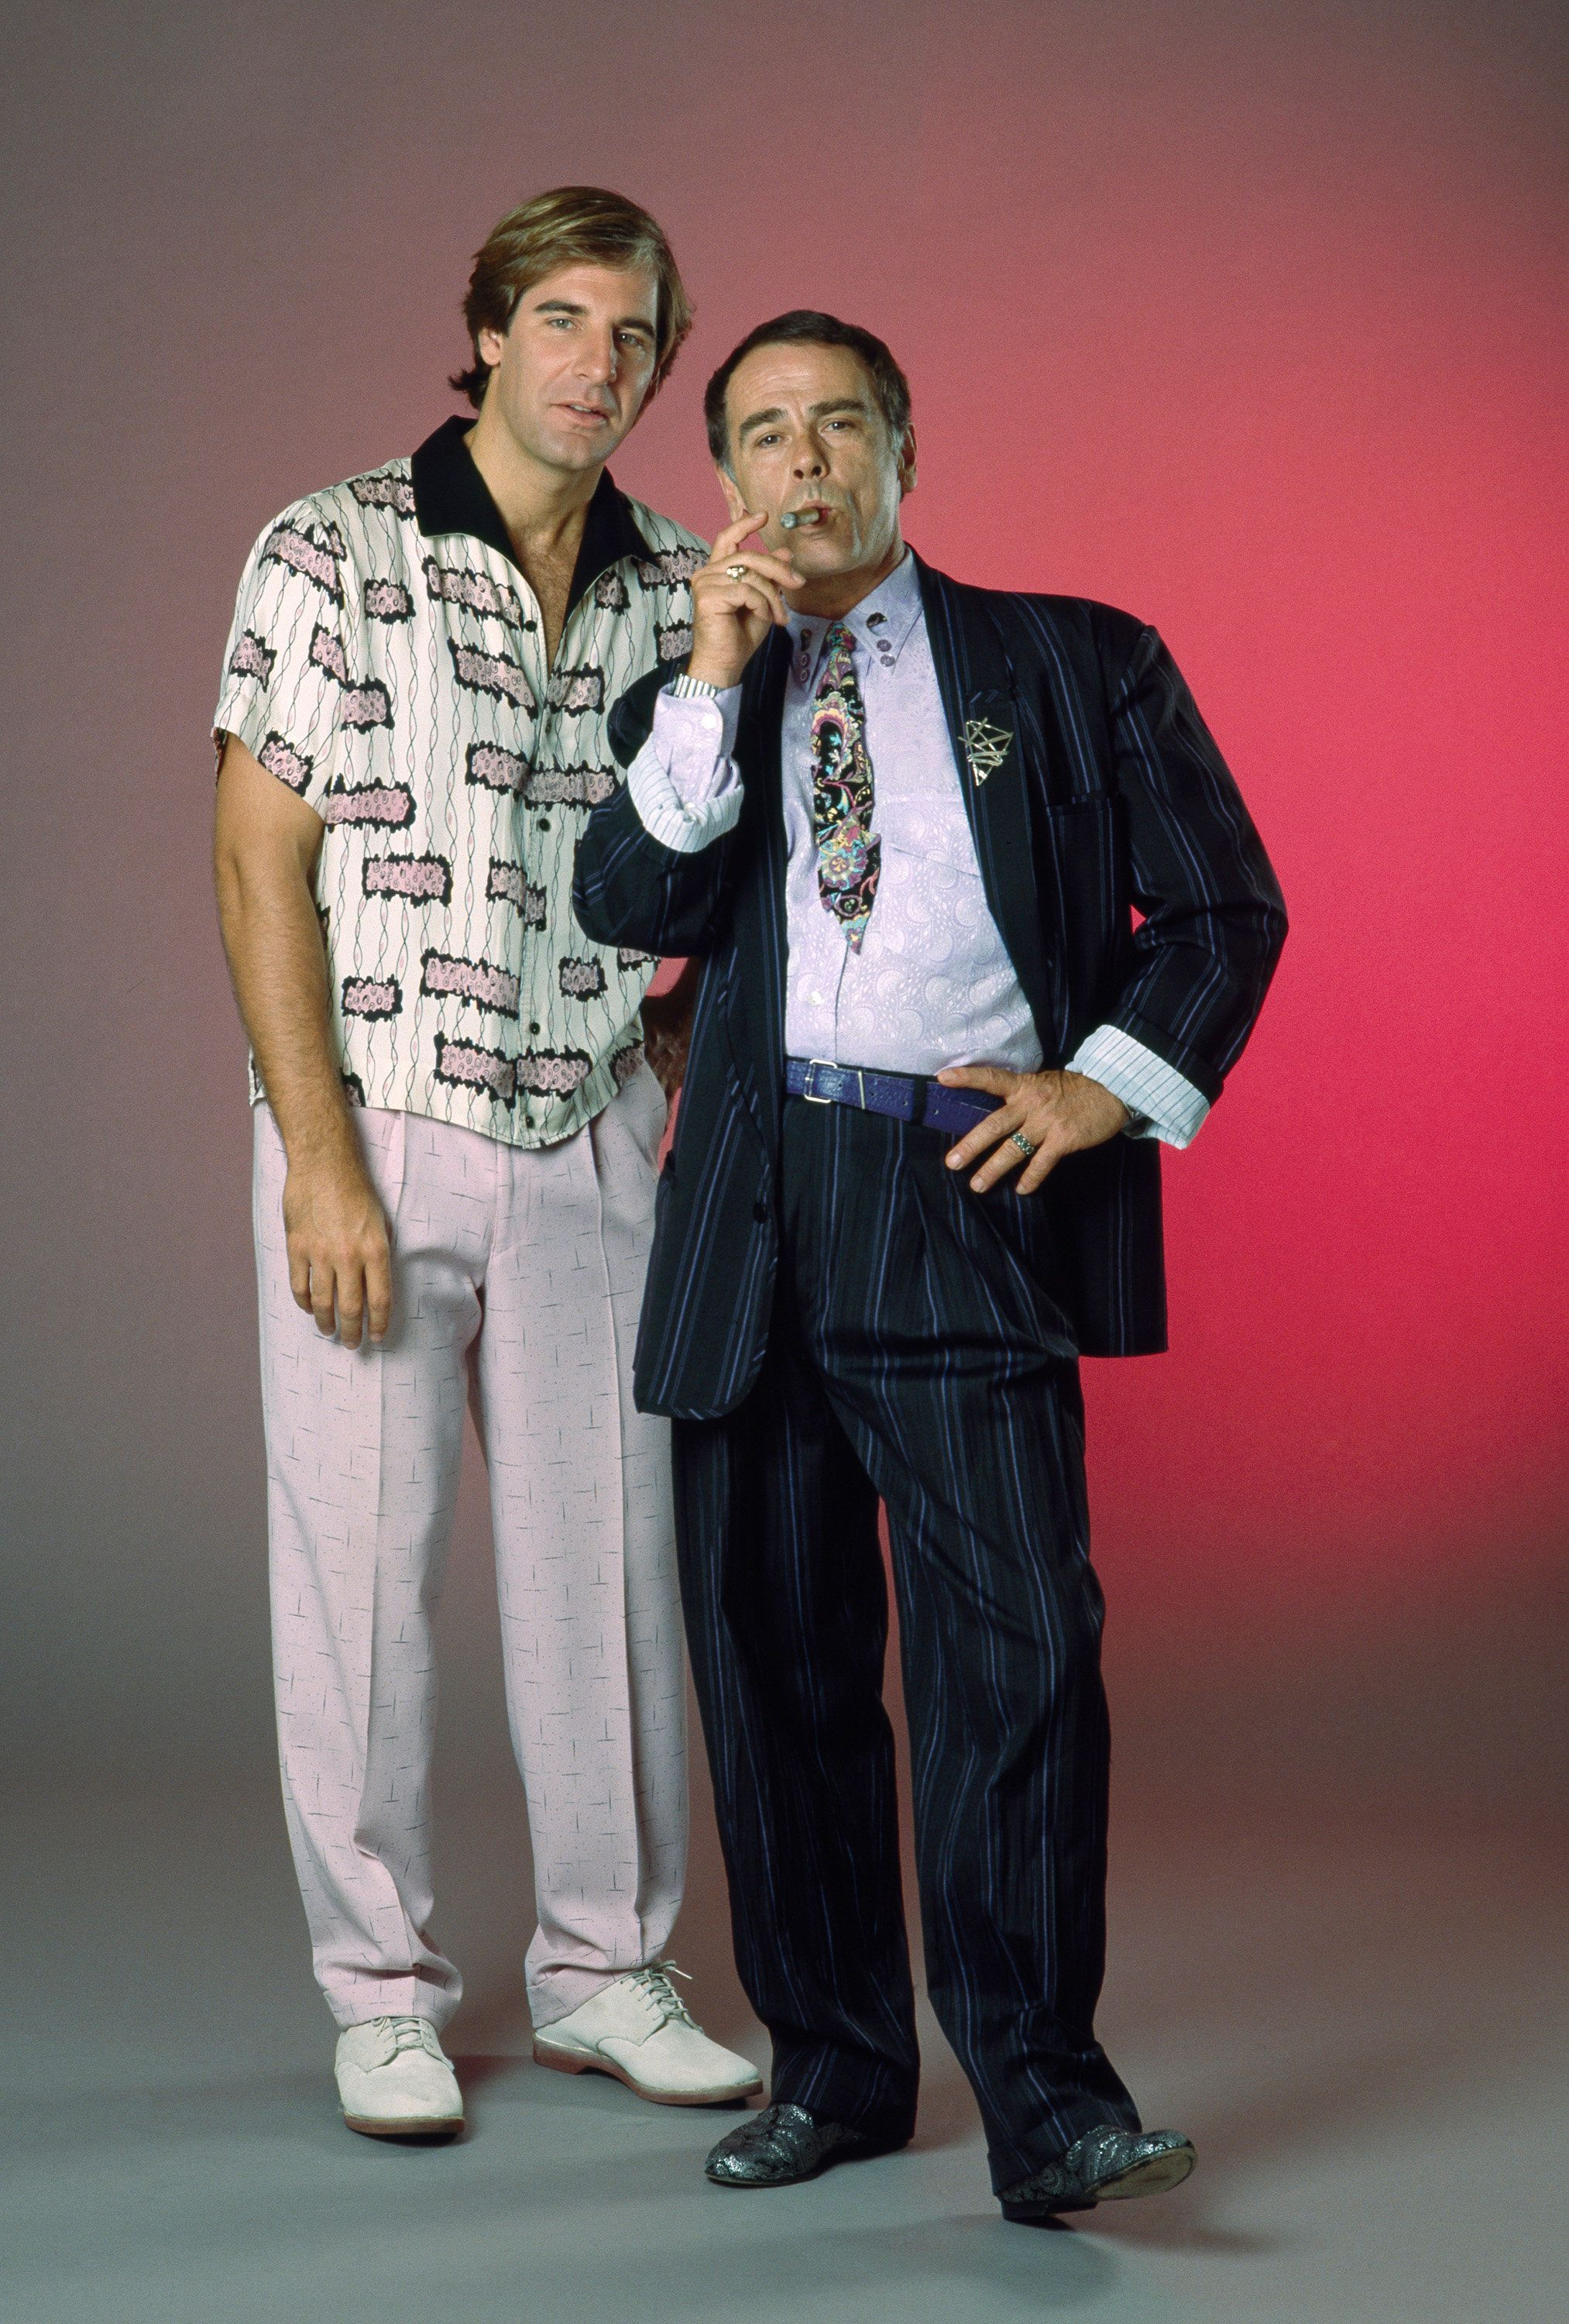 QUANTUM LEAP -- Season 2 -- Pictured: (l-r) Scott Bakula as Dr. Sam Beckett, Dean Stockwell as Admiral Al Calavicci  (Photo by NBC/NBCU Photo Bank via Getty Images)